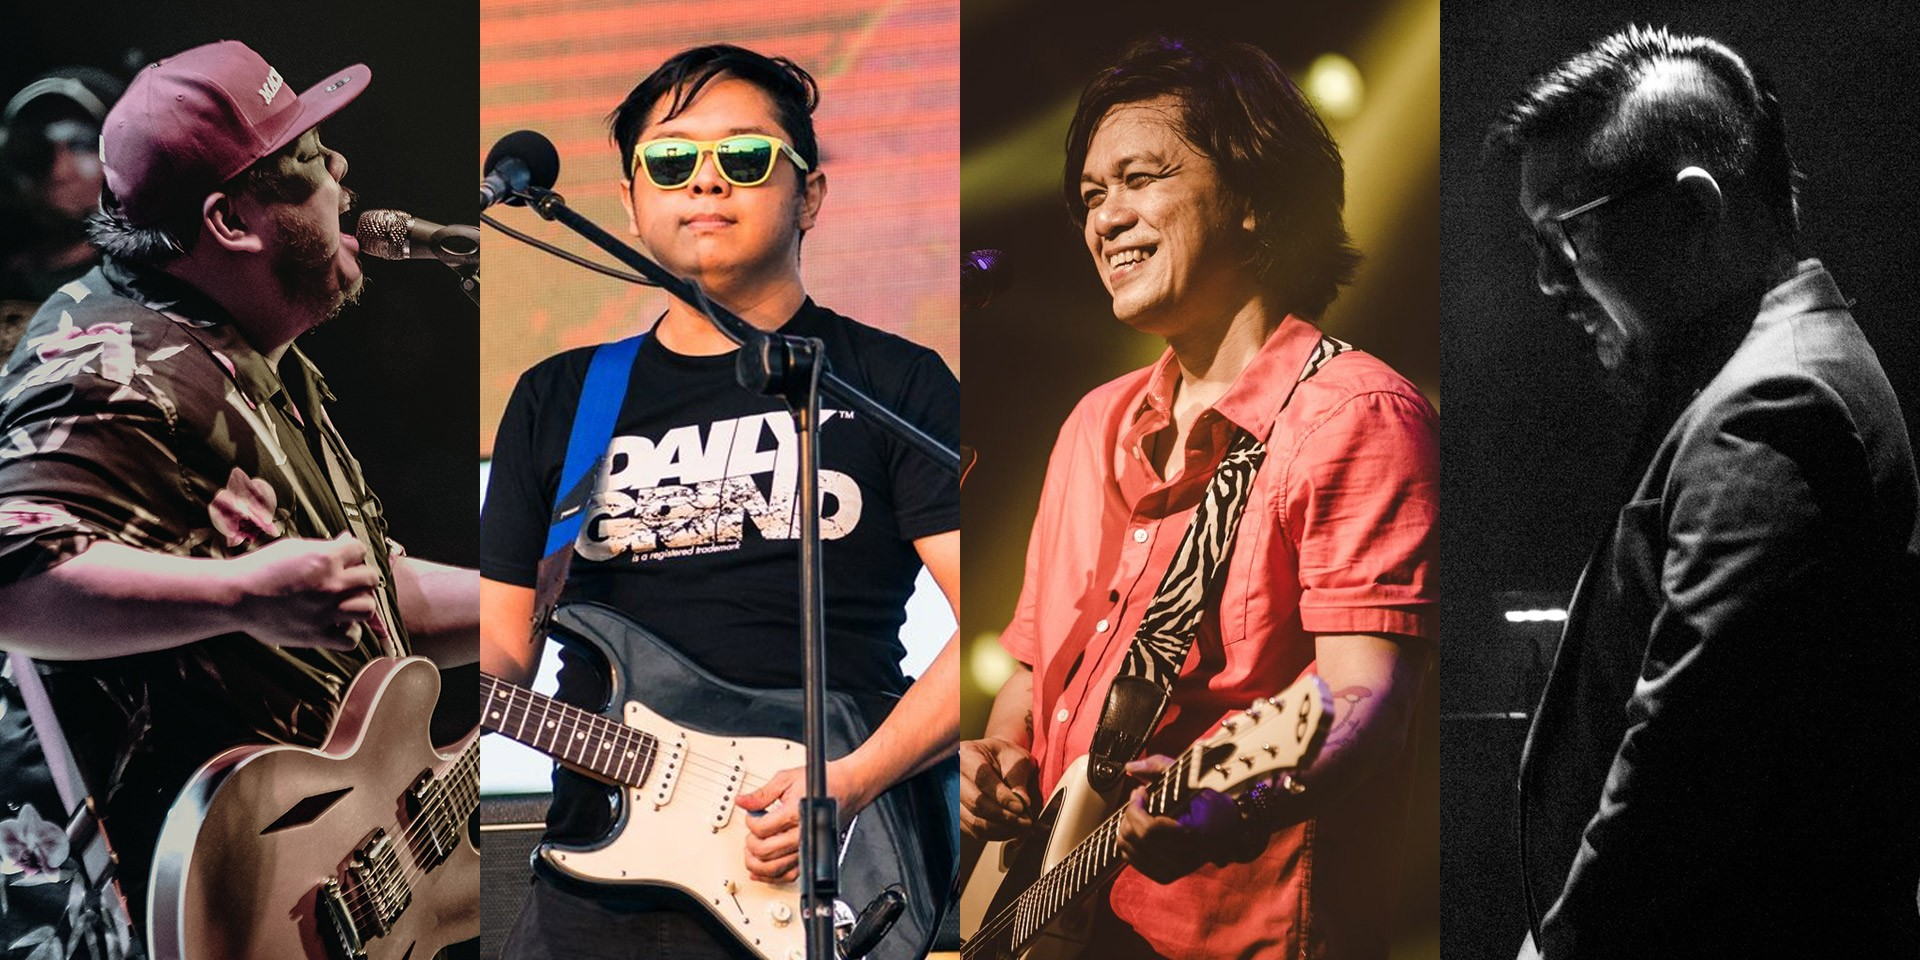 Musicians for Hire: Hale, The Itchyworms, Raymund Marasigan, and more offer lessons, music production, session work